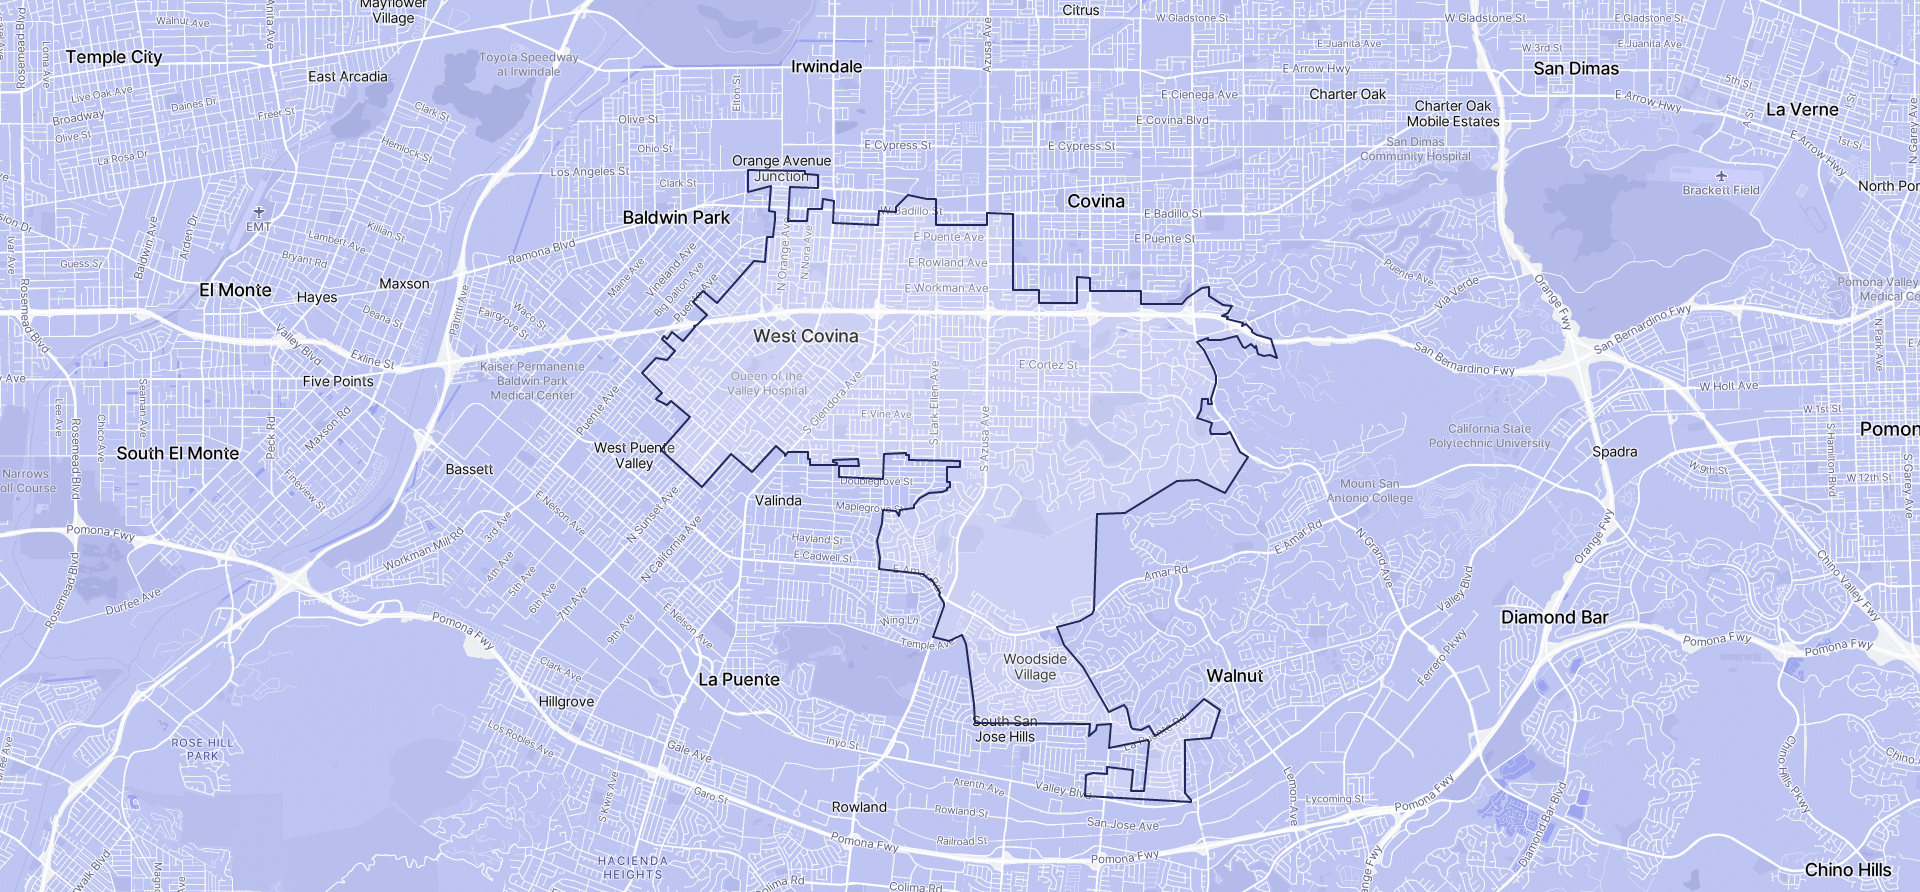 Image of West Covina boundaries on a map.